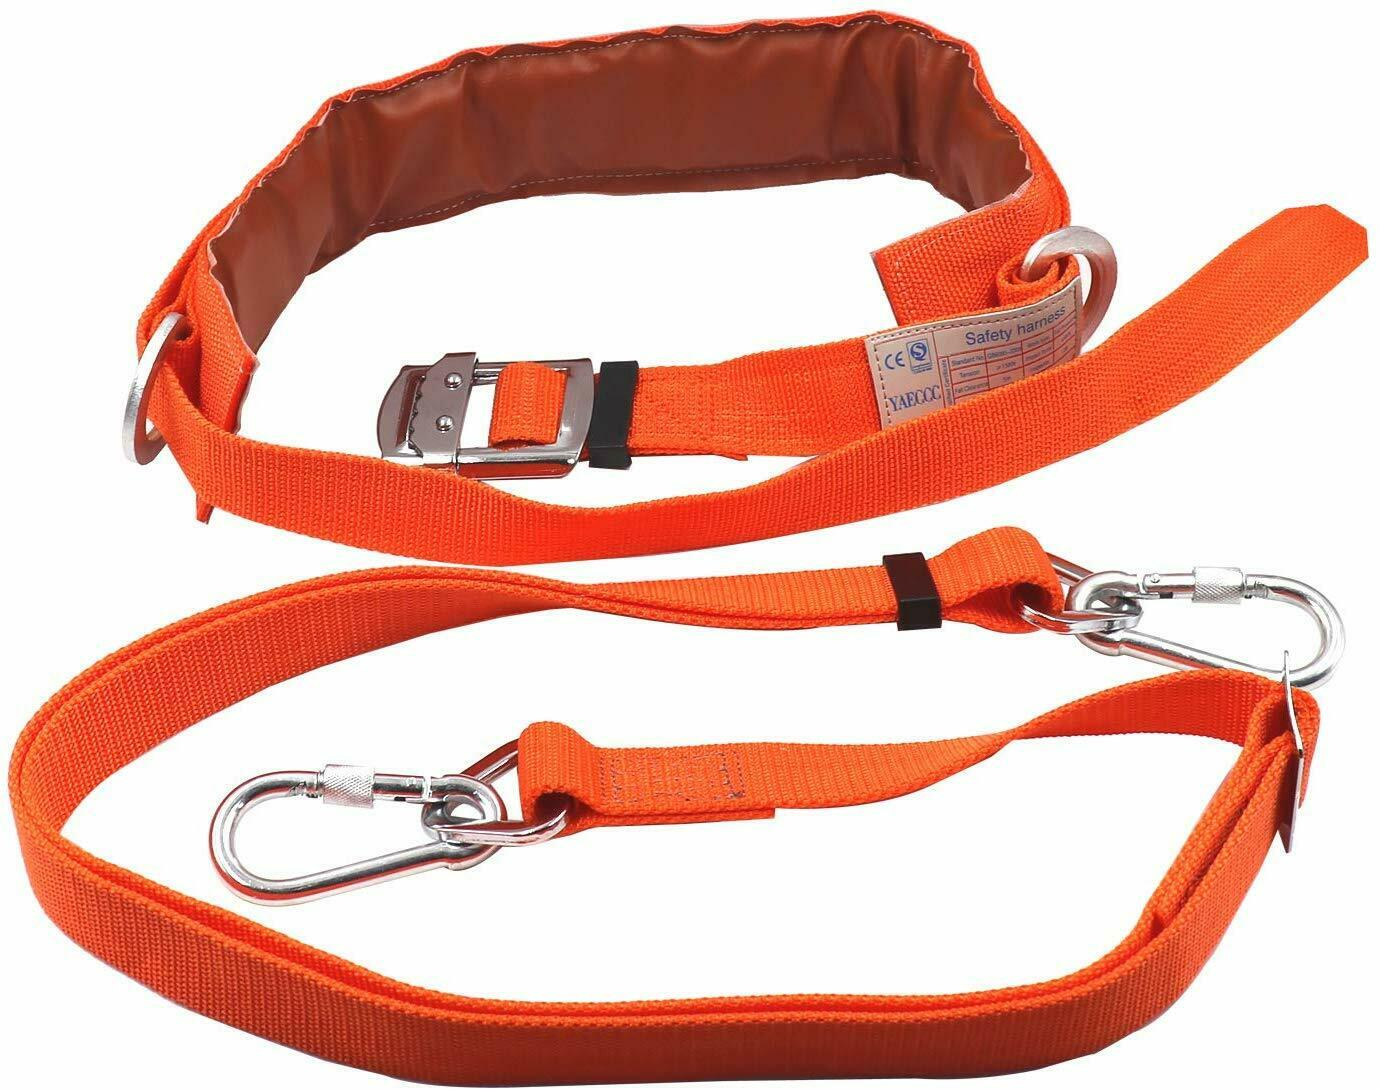 Details about  /Safety Harness Kits Safety Belt Safety Belt Outdoor Safety Strap Firefighters